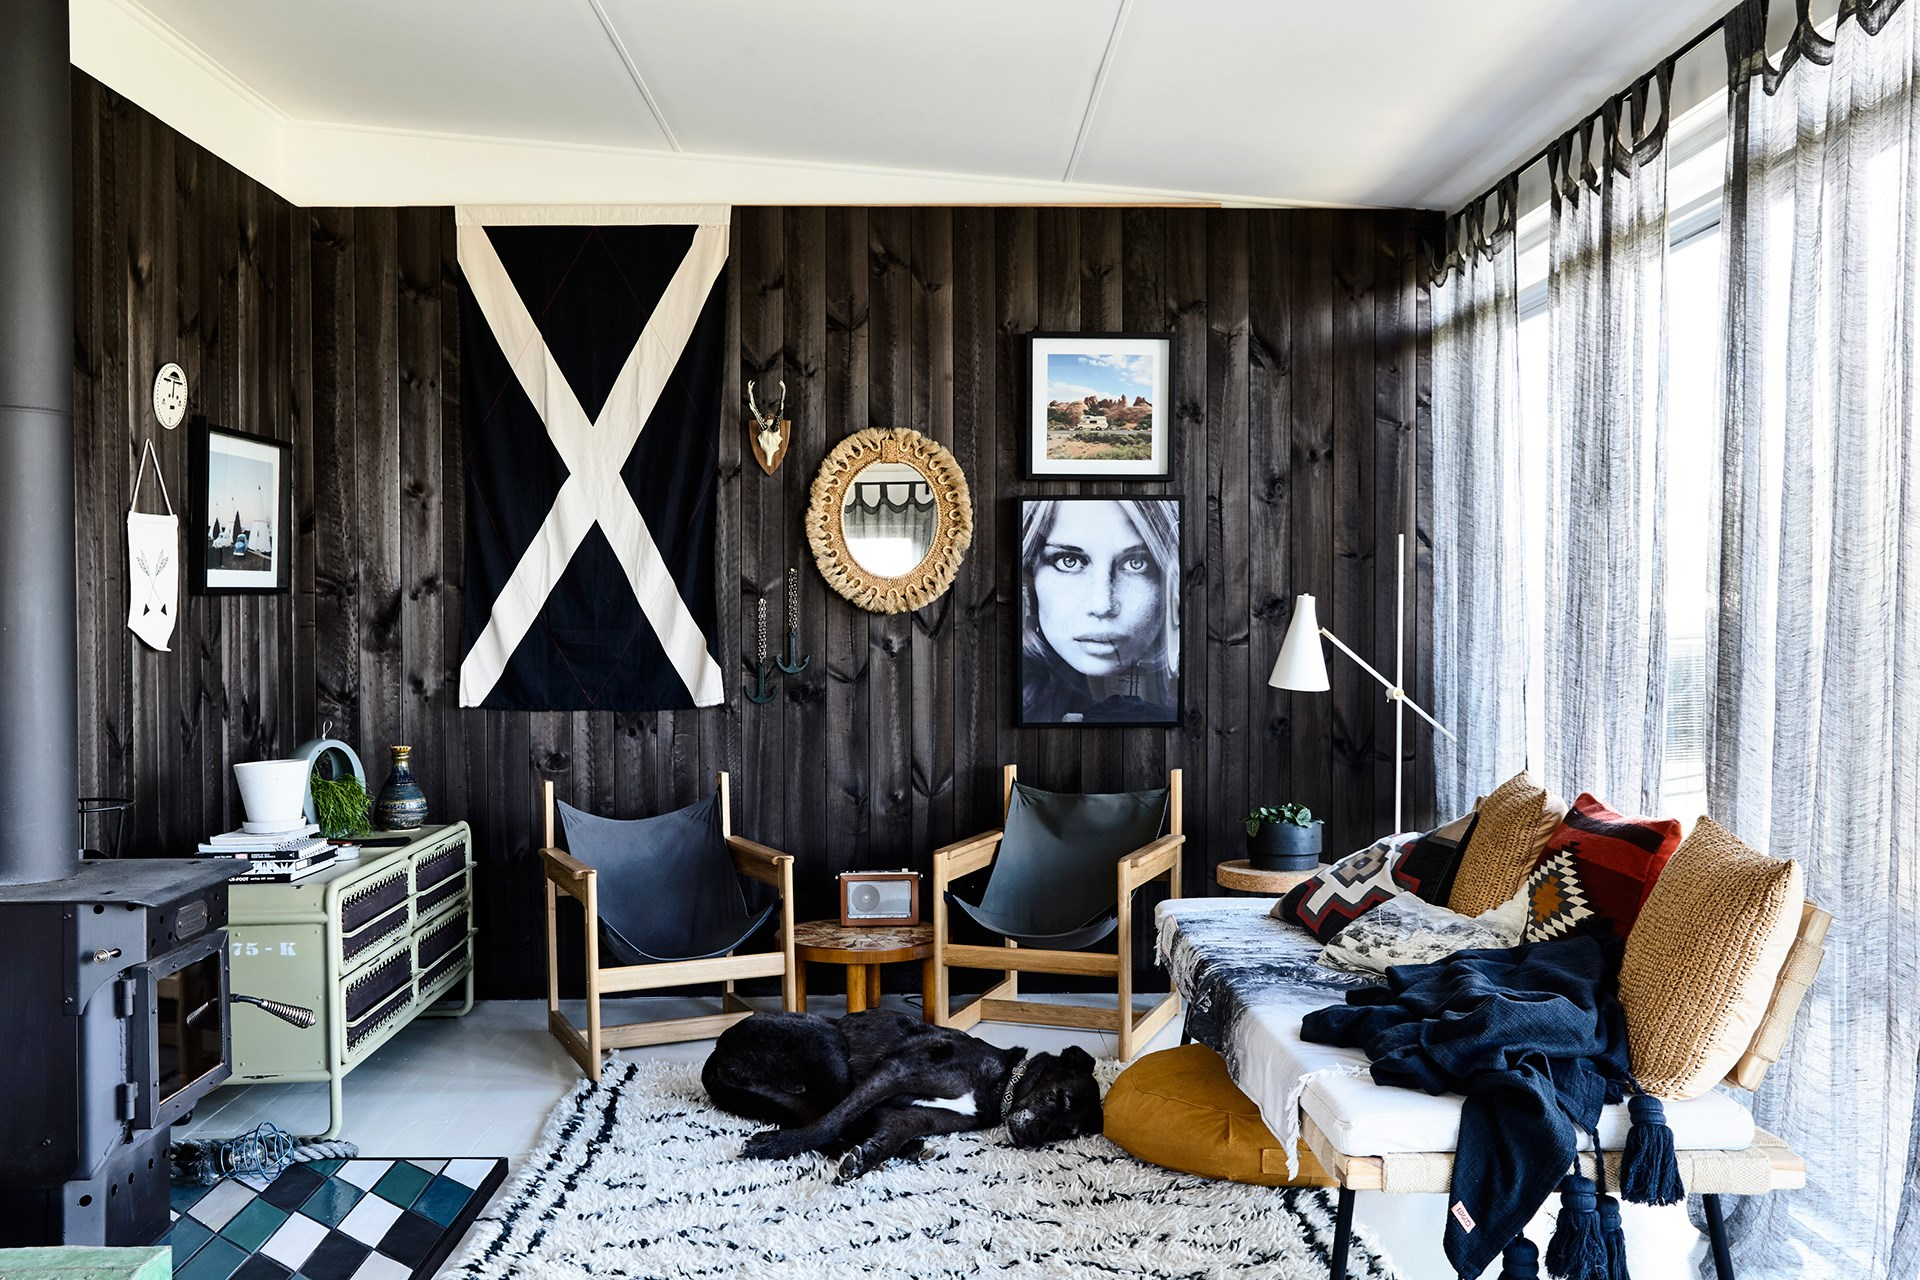 """Scandinavian homes are welcoming and casual spaces (though, stylishly so) and veer away from formality, as can be seen in this living room. The low-line furniture not only invites you to loll around and hang out, it's a great decorating trick making the room seem taller than it is.   See more of this [renovated beach shack](http://www.homestolove.com.au/beach-shack-gets-unique-makeover-3779